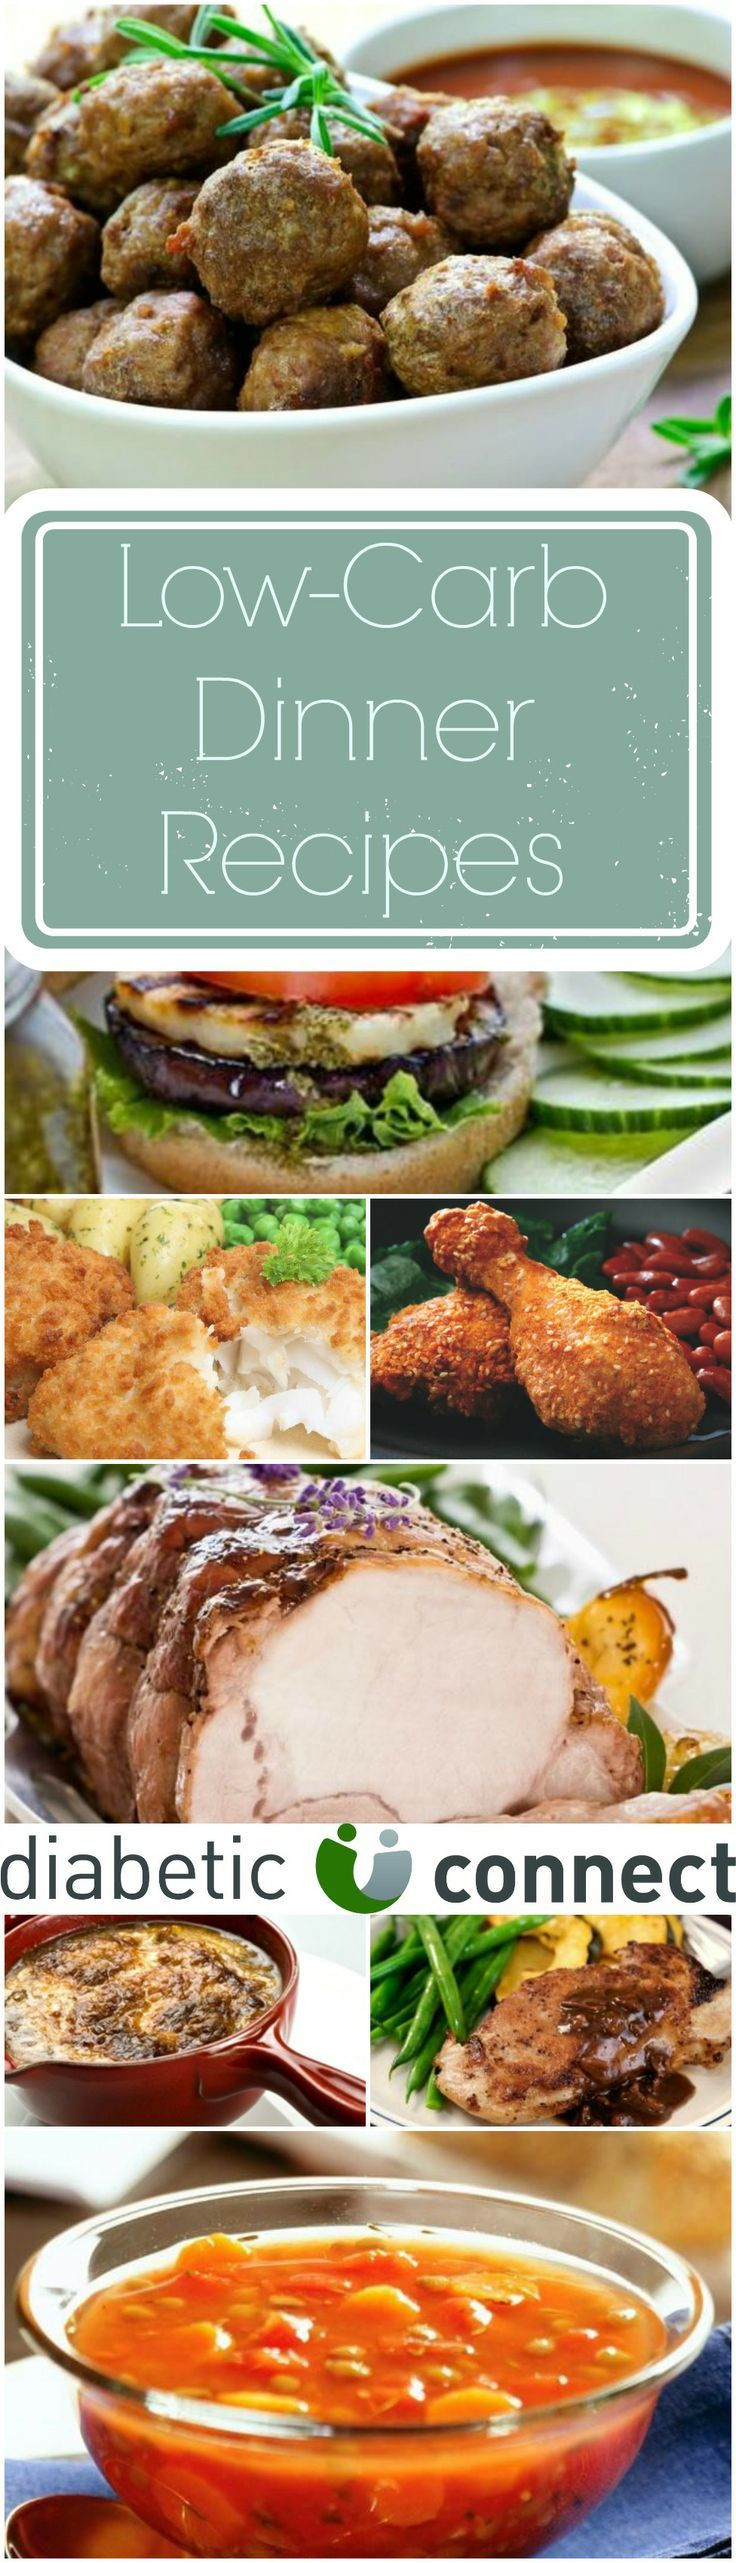 Diabetic Dinner Ideas  A healthy dinner doesn t have to be difficult With a